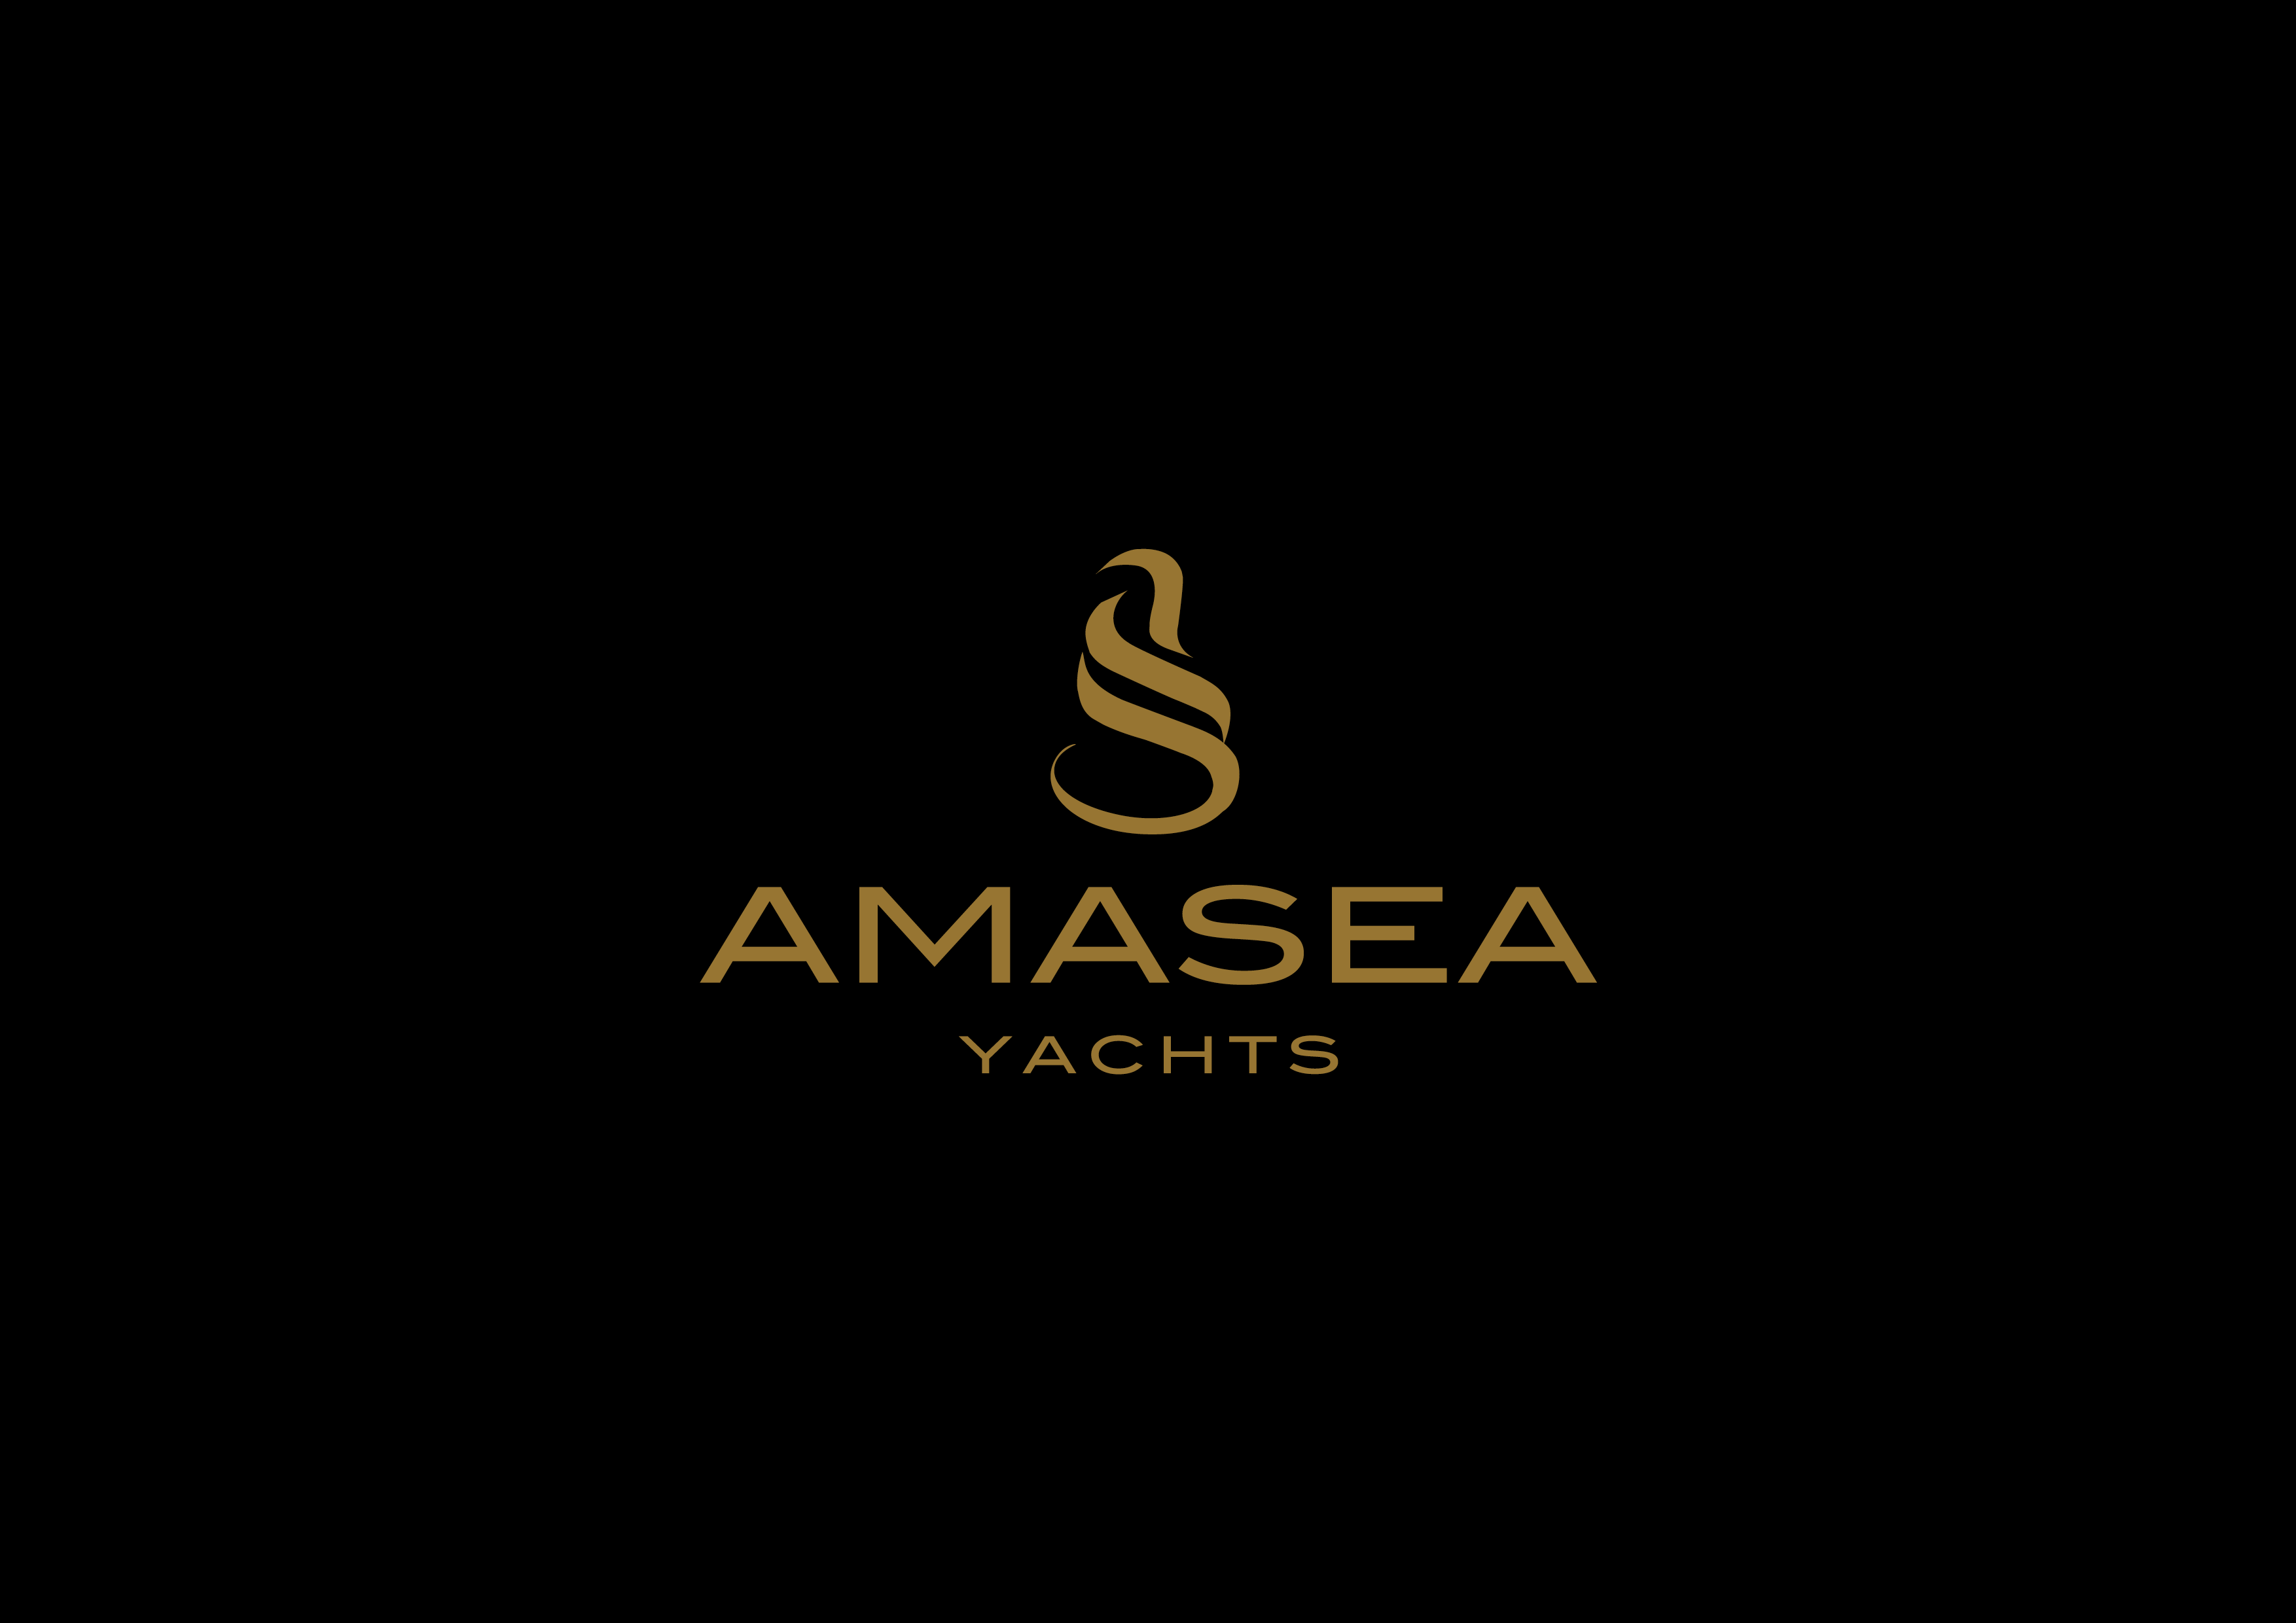 Amasea Yachts – A new concept